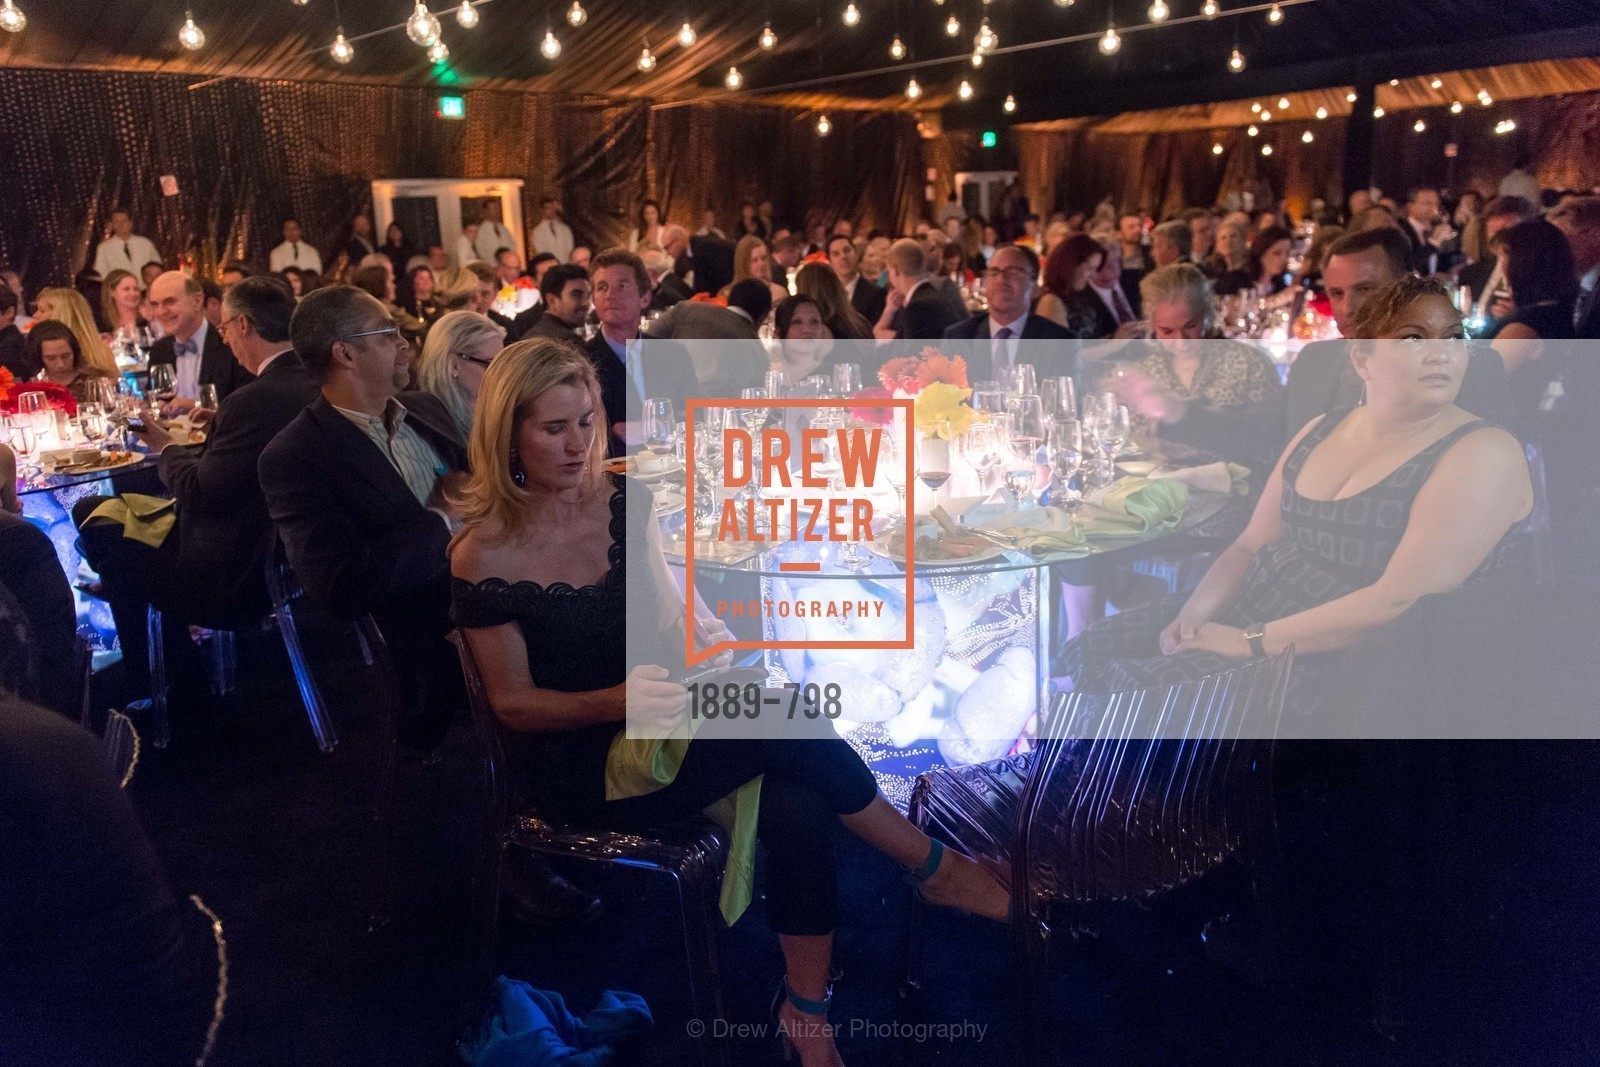 Summer Tompkins Walker, CALIFORNIA ACADEMY OF SCIENCES - Big Bang Gala 2015, US, April 23rd, 2015,Drew Altizer, Drew Altizer Photography, full-service agency, private events, San Francisco photographer, photographer california